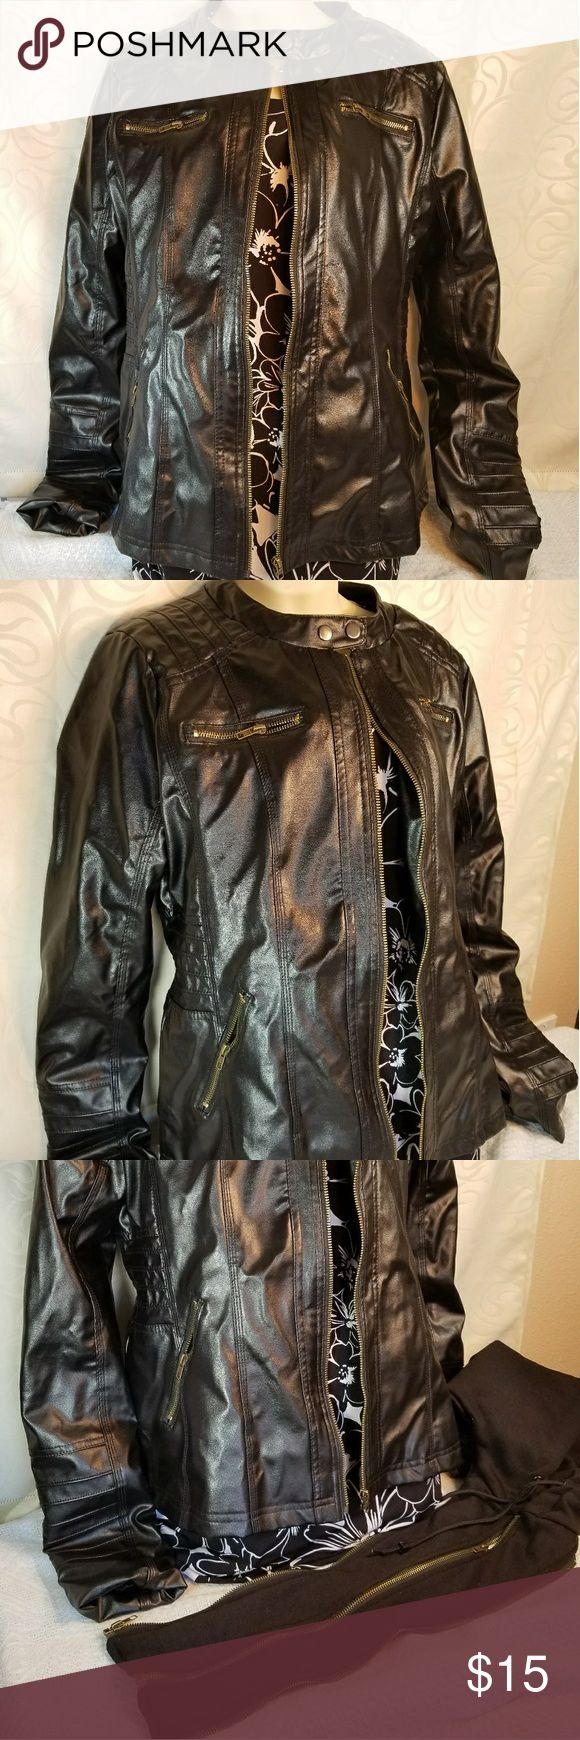 """UNKNOWN BRAND Black Faux Leather Jacket UNKNOWN BRAND Black Faux Leather Jacket Size: XXL (Fits closer to a Med-Large) Detachable hood and middle zipper piece Smoke Free Home Pet Free Home Great Condition All Offers Considered!  Personally, I would wear this jacket every day but I'm more of a large/extra large.  Also, I'm not listing a brand as it doesn't have tags... no brand, no """"care for"""", only size.   Thanks and Have a Great Day! Jackets & Coats"""